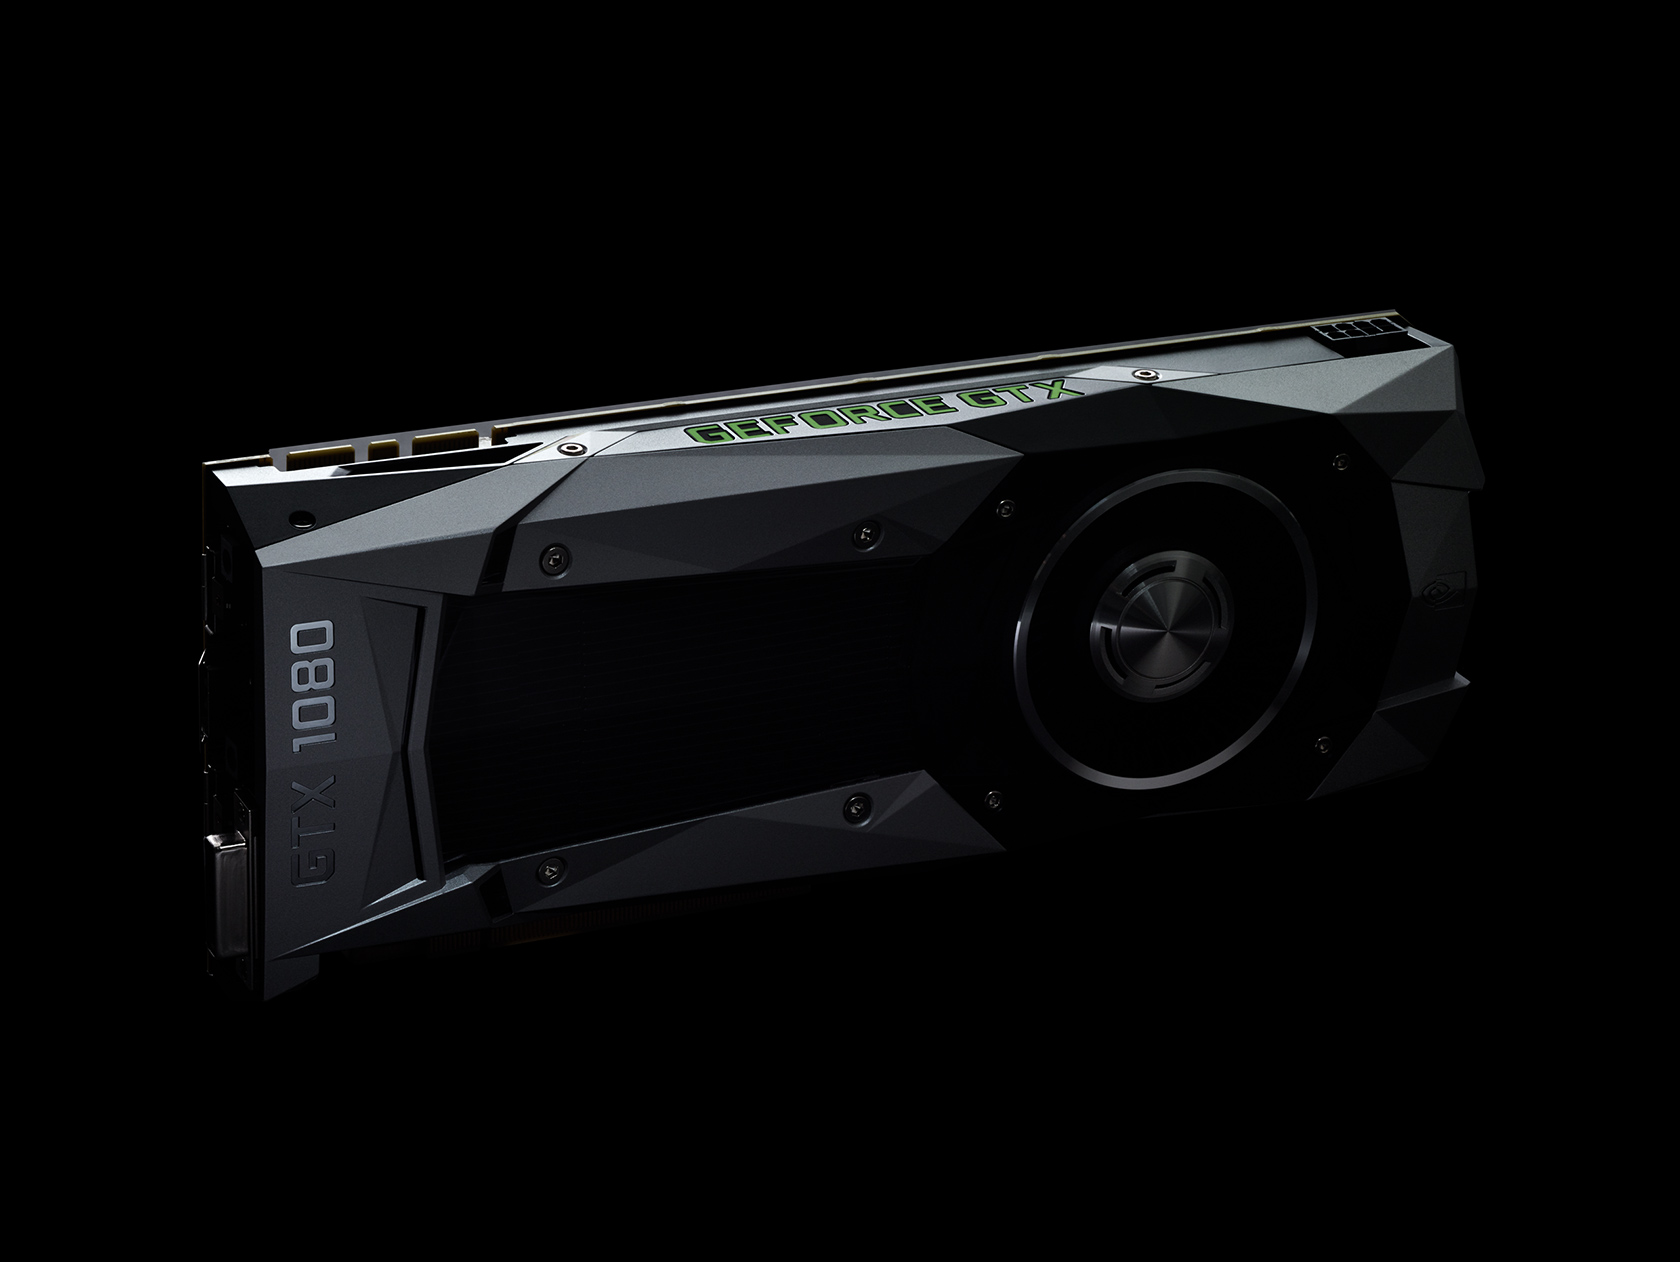 NVIDIA-GeForce-GTX-1080 official 04